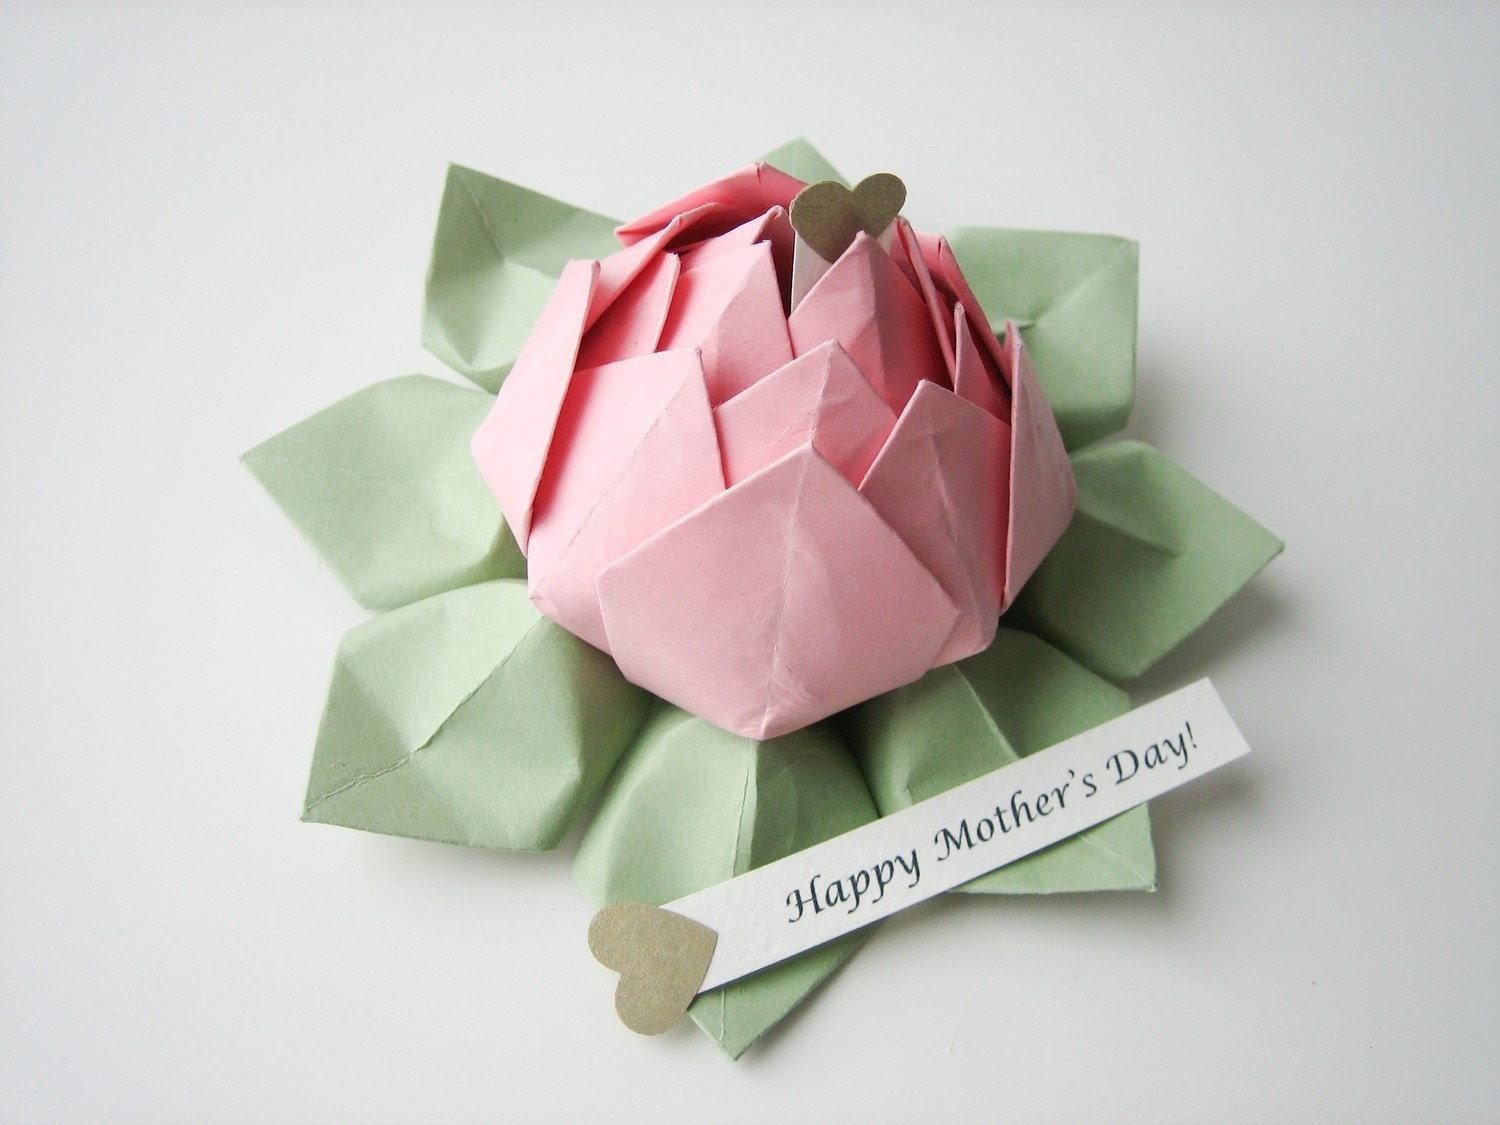 PERSONALIZED Mother's Day Gift Origami Lotus Flower - photo#4